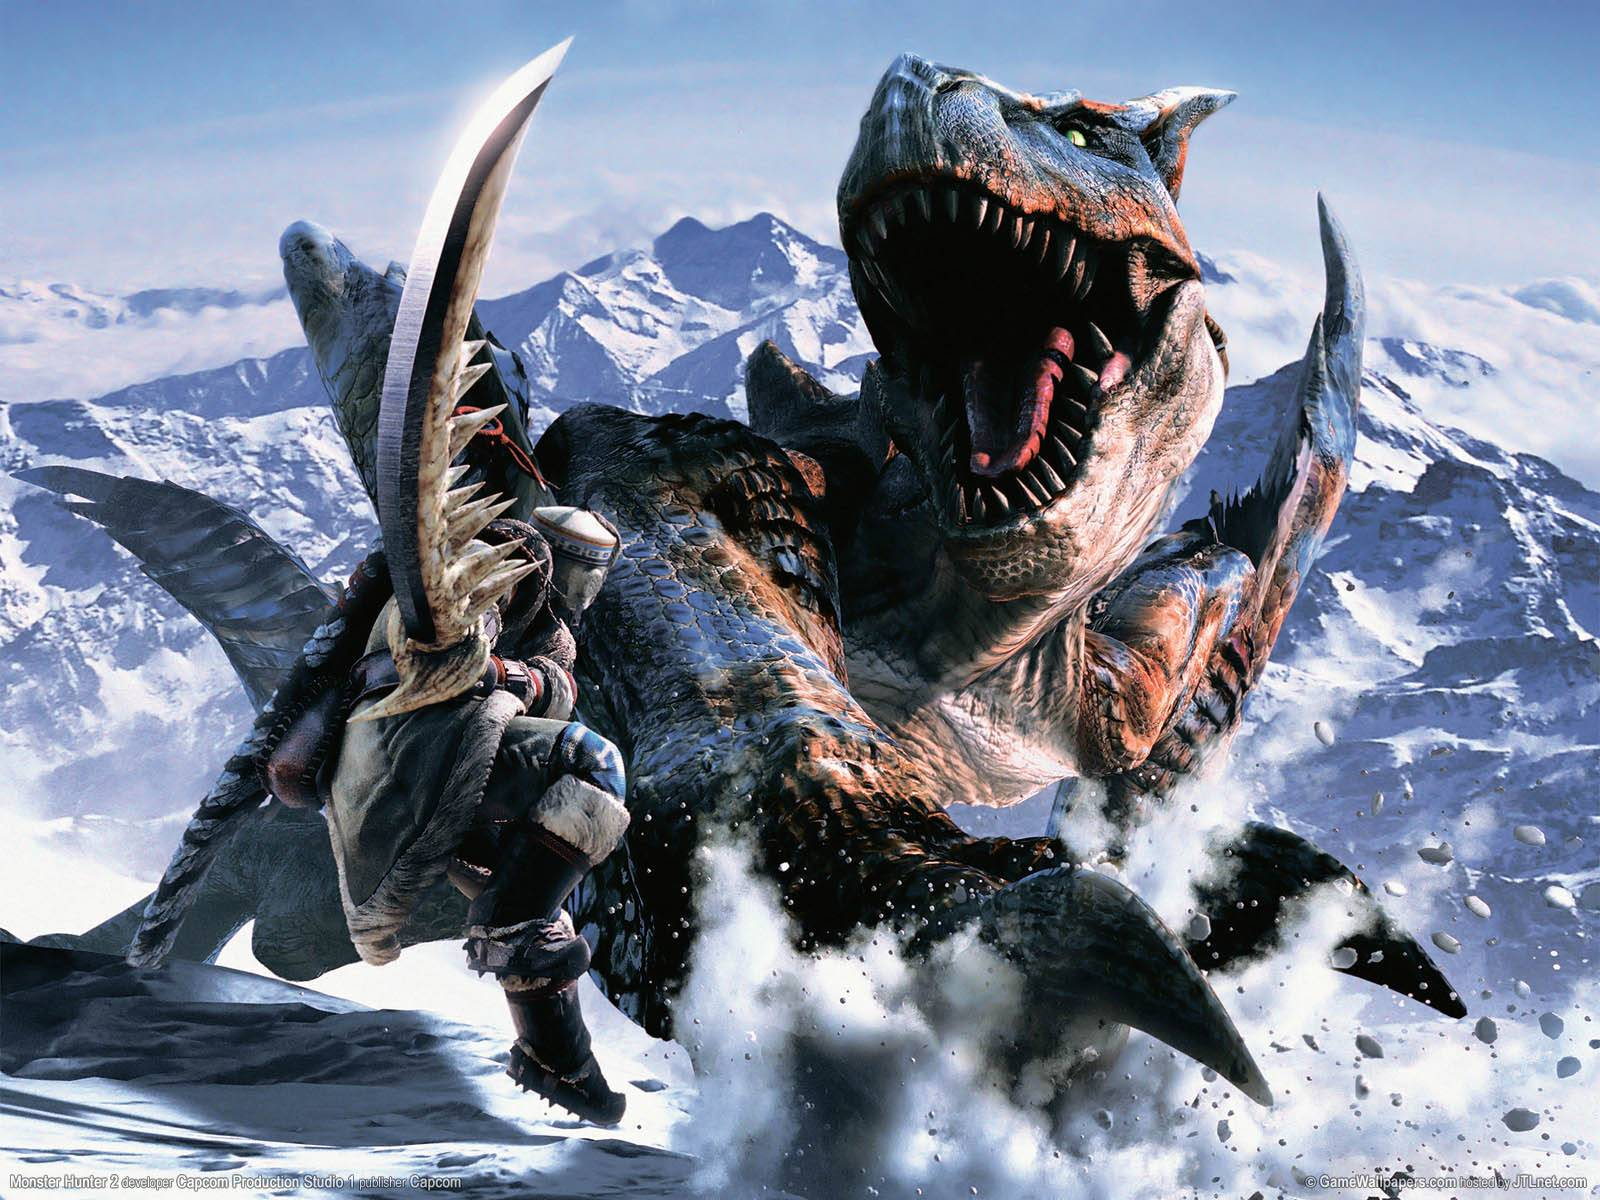 Monster Hunter 4 Wallpapers In HD GamingBoltcom Video Game News 1600x1200